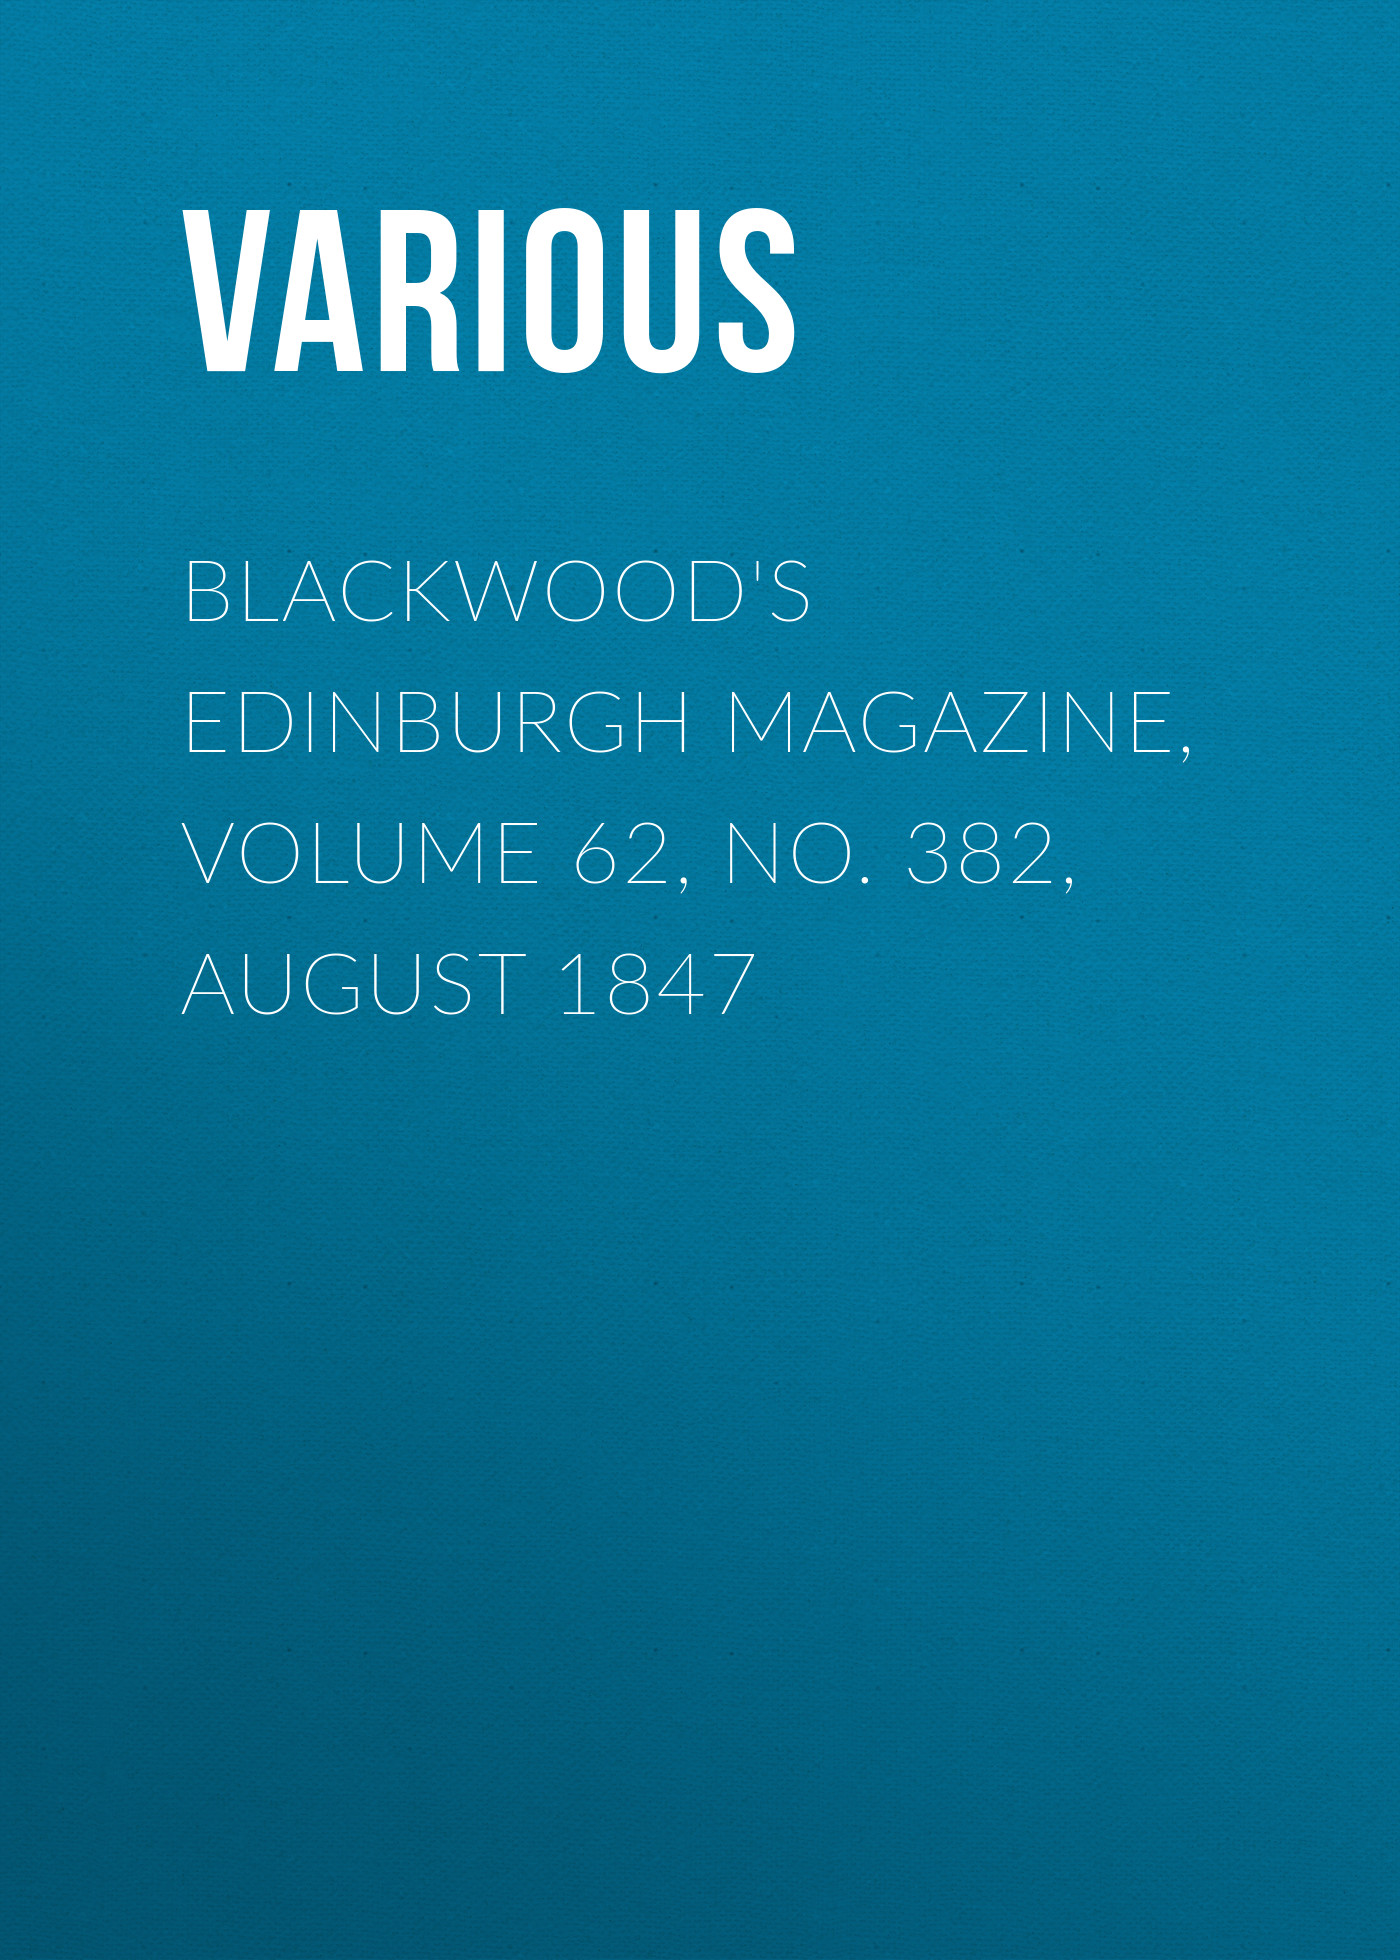 Blackwood\'s Edinburgh Magazine, Volume 62, No. 382, August 1847 ( Various  )